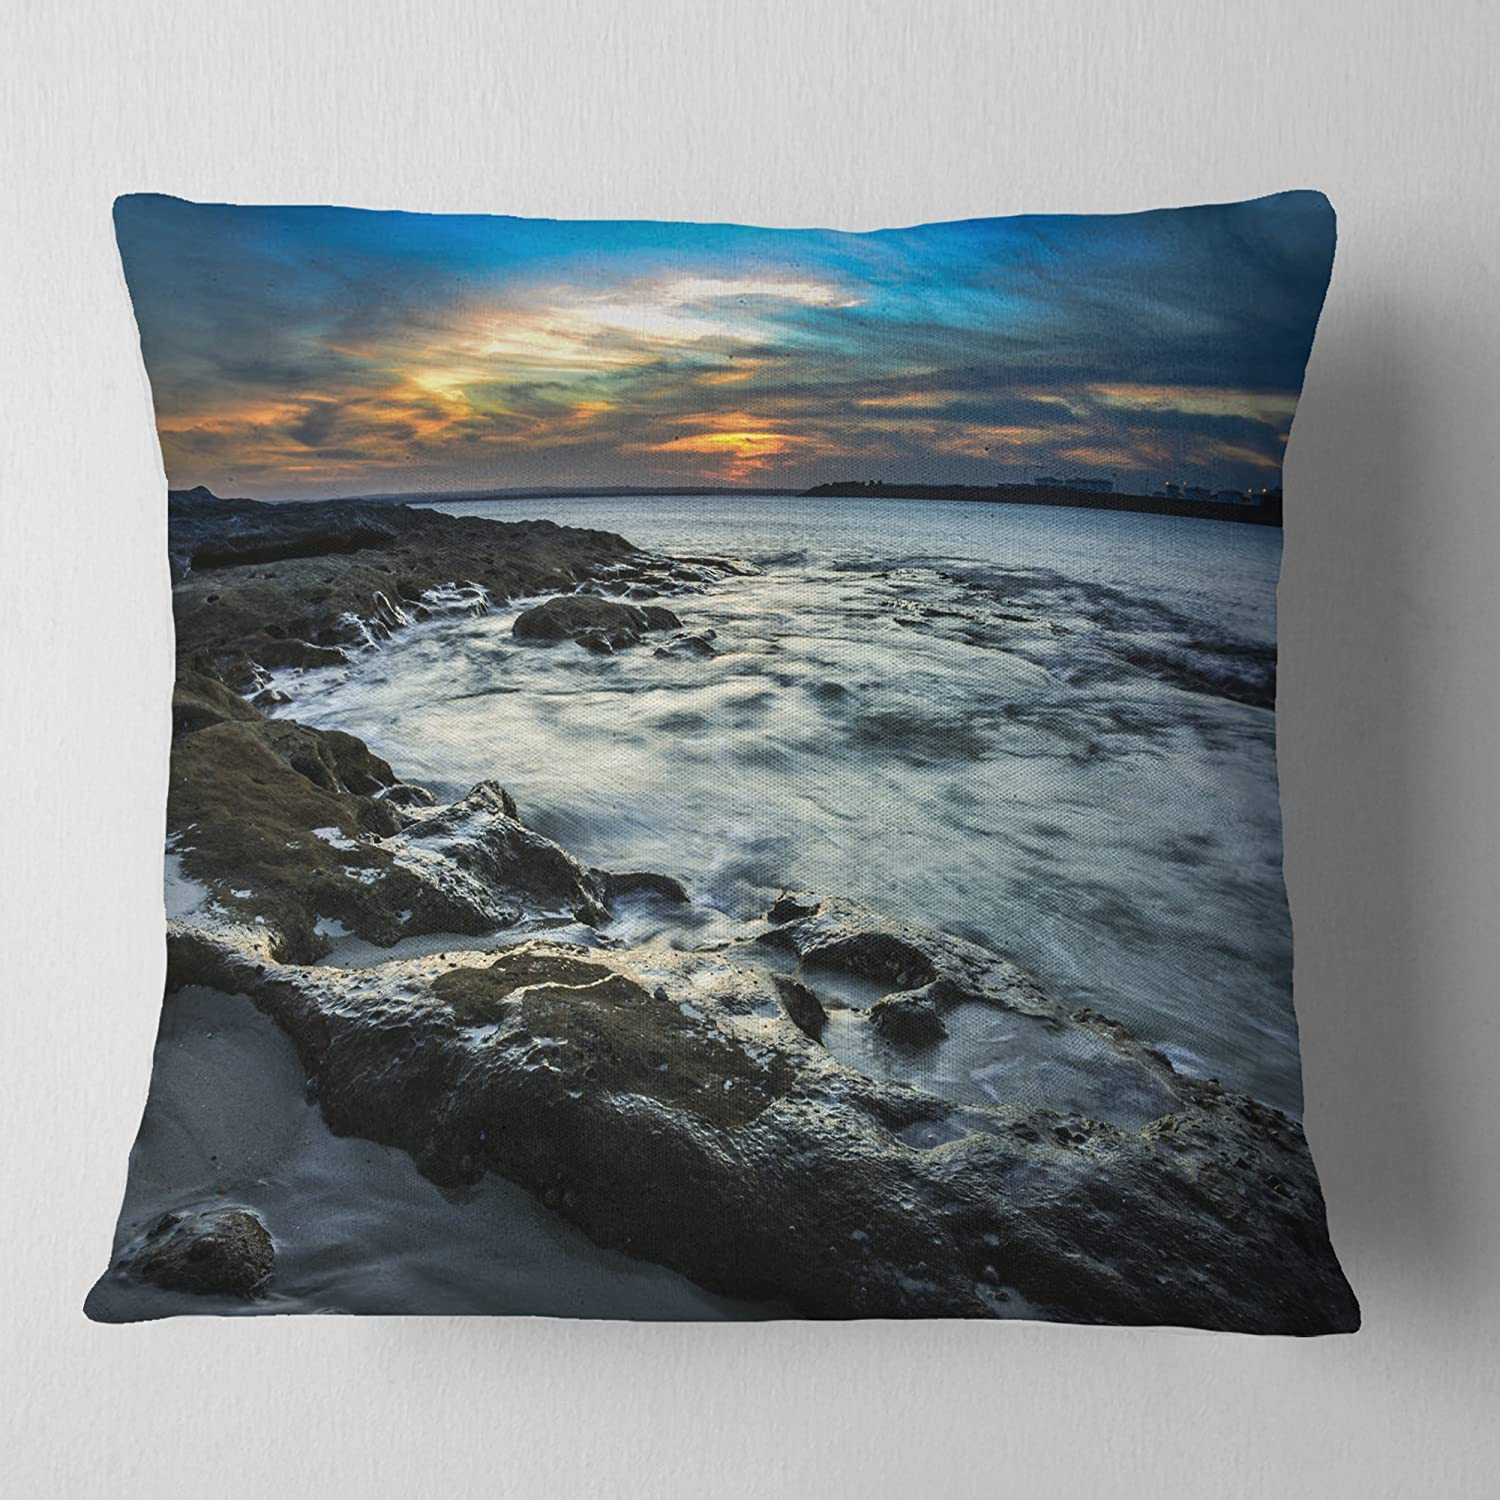 X 26 In Designart Cu10202 26 26 Fascinating Sunset At Australia Coastline Seashore Cushion Cover For Living Room In Sofa Throw Pillow 26 In Insert Printed On Both Side